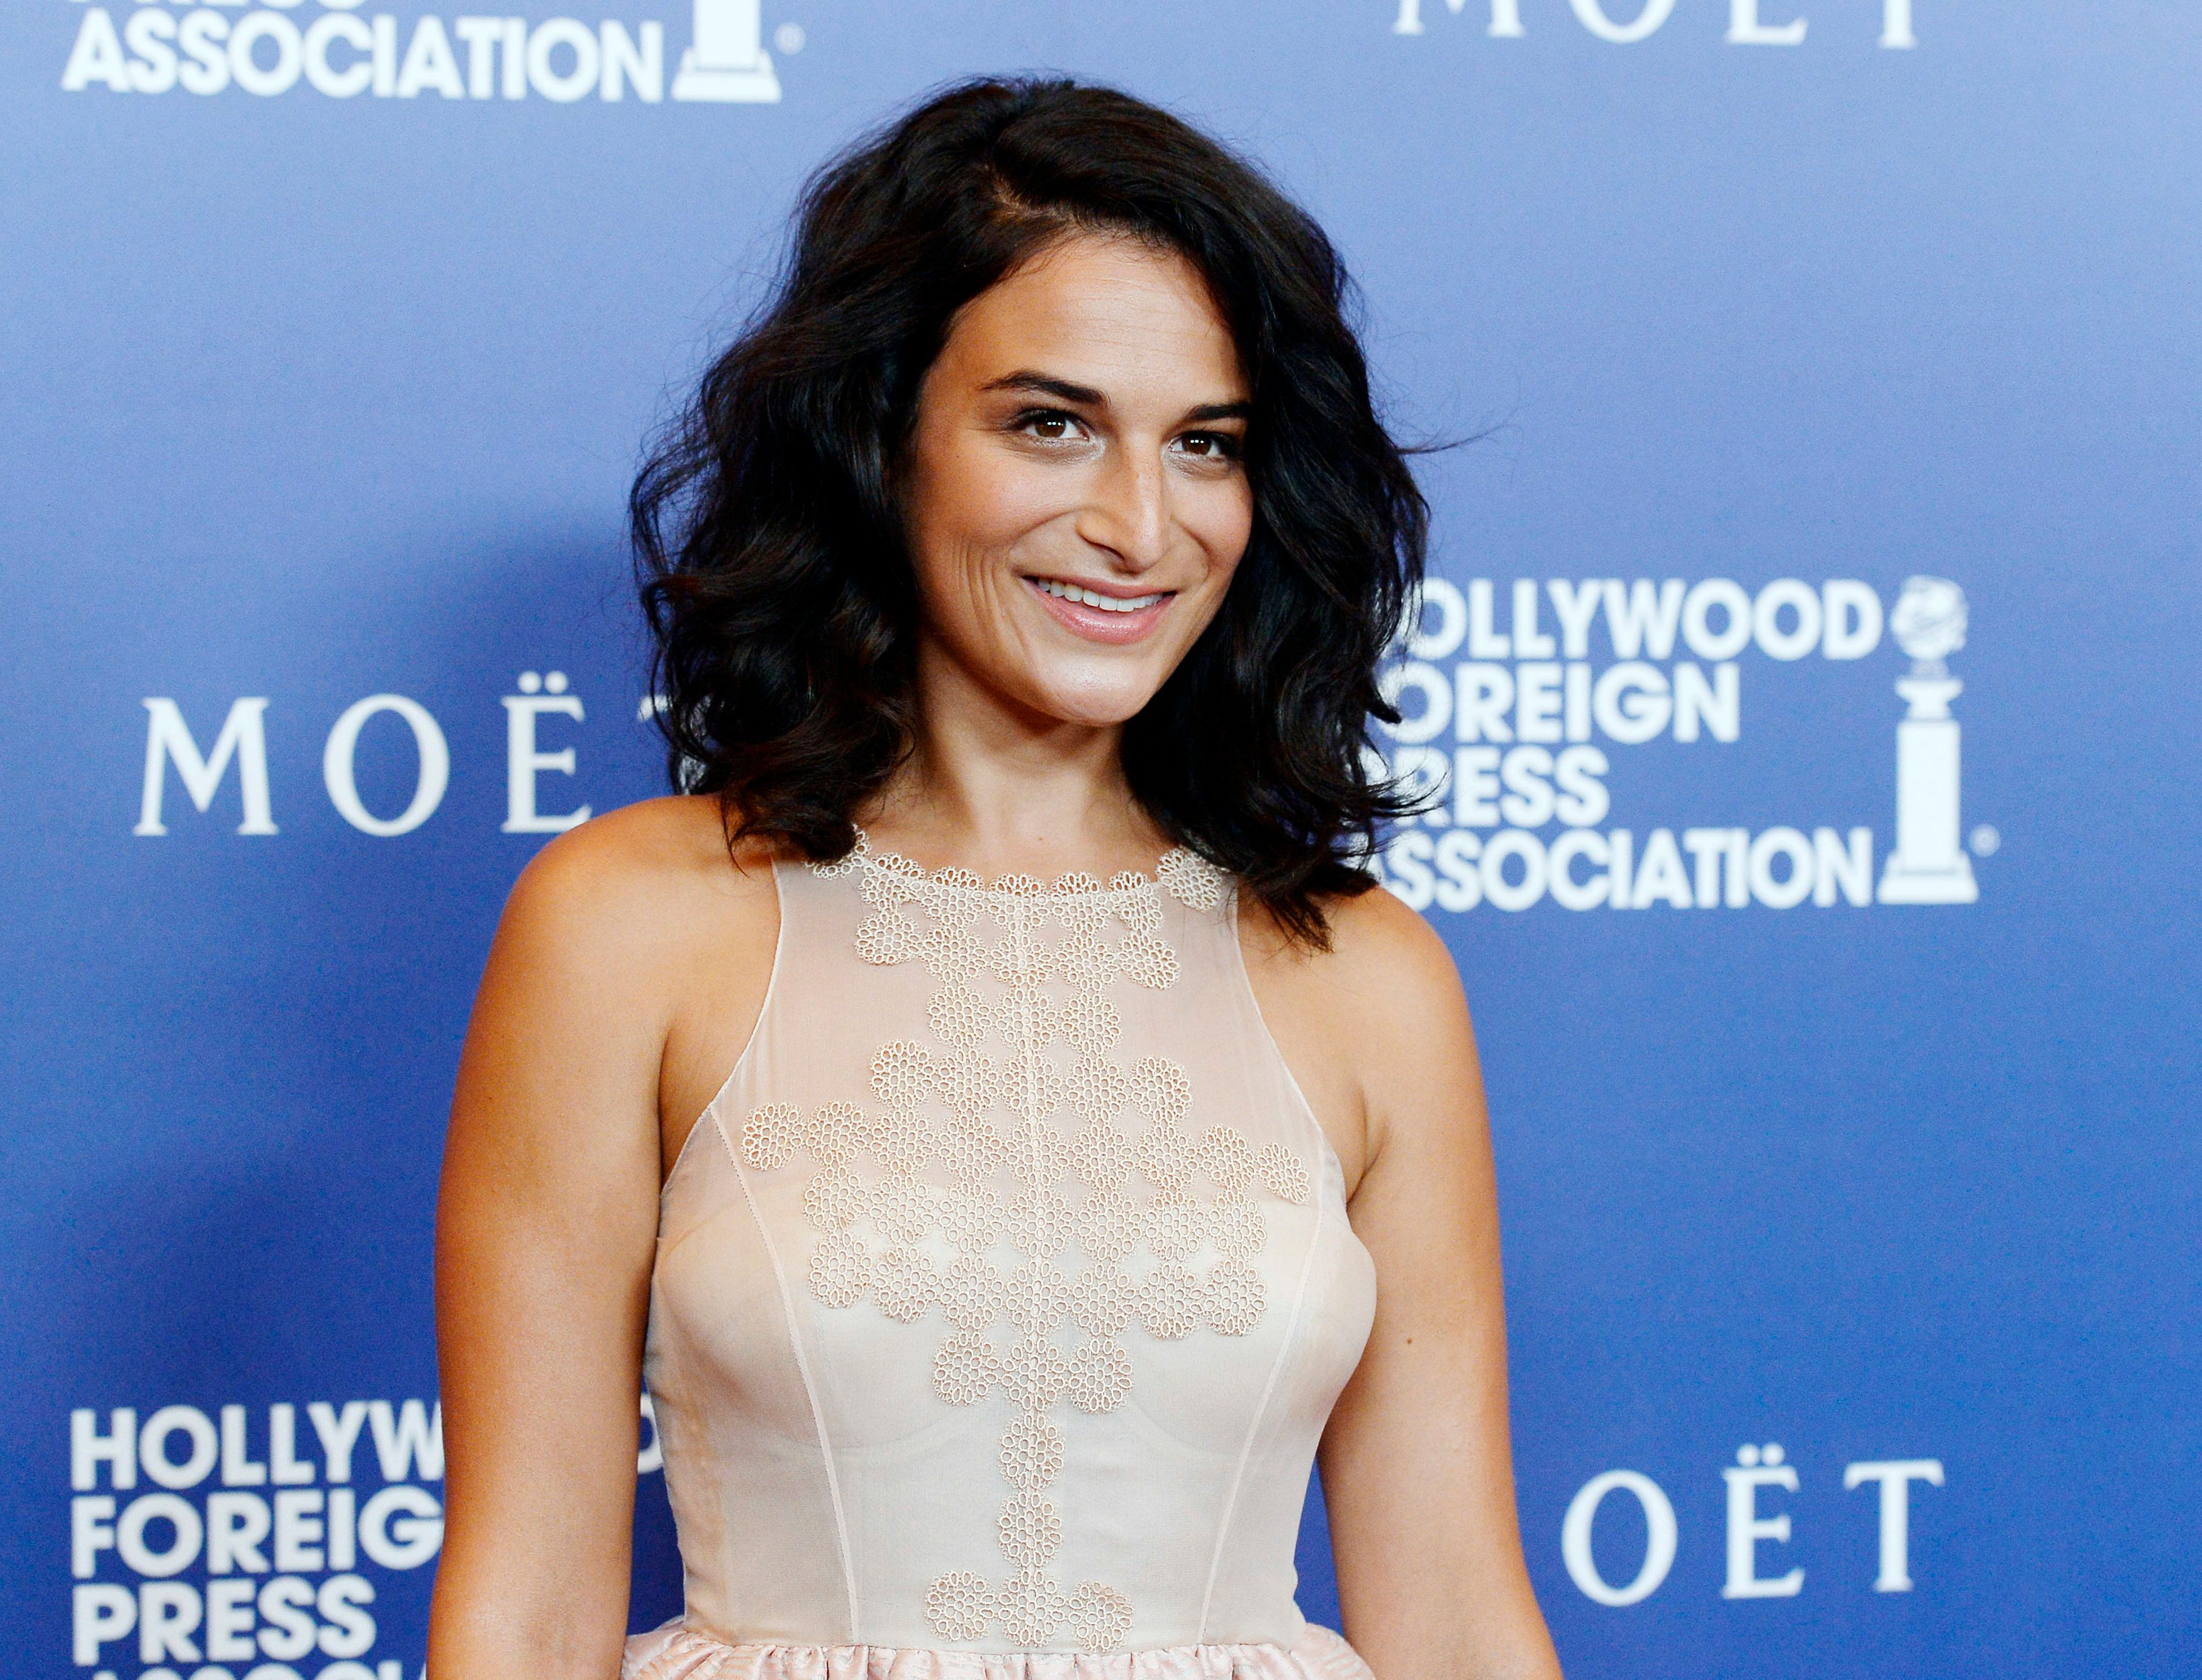 Actress Jenny Slate attends the Hollywood Foreign Press Association's Grants Banquet in Beverly Hills, California August 14, 2014. REUTERS/Kevork Djansezian (UNITED STATES - Tags: ENTERTAINMENT MEDIA)